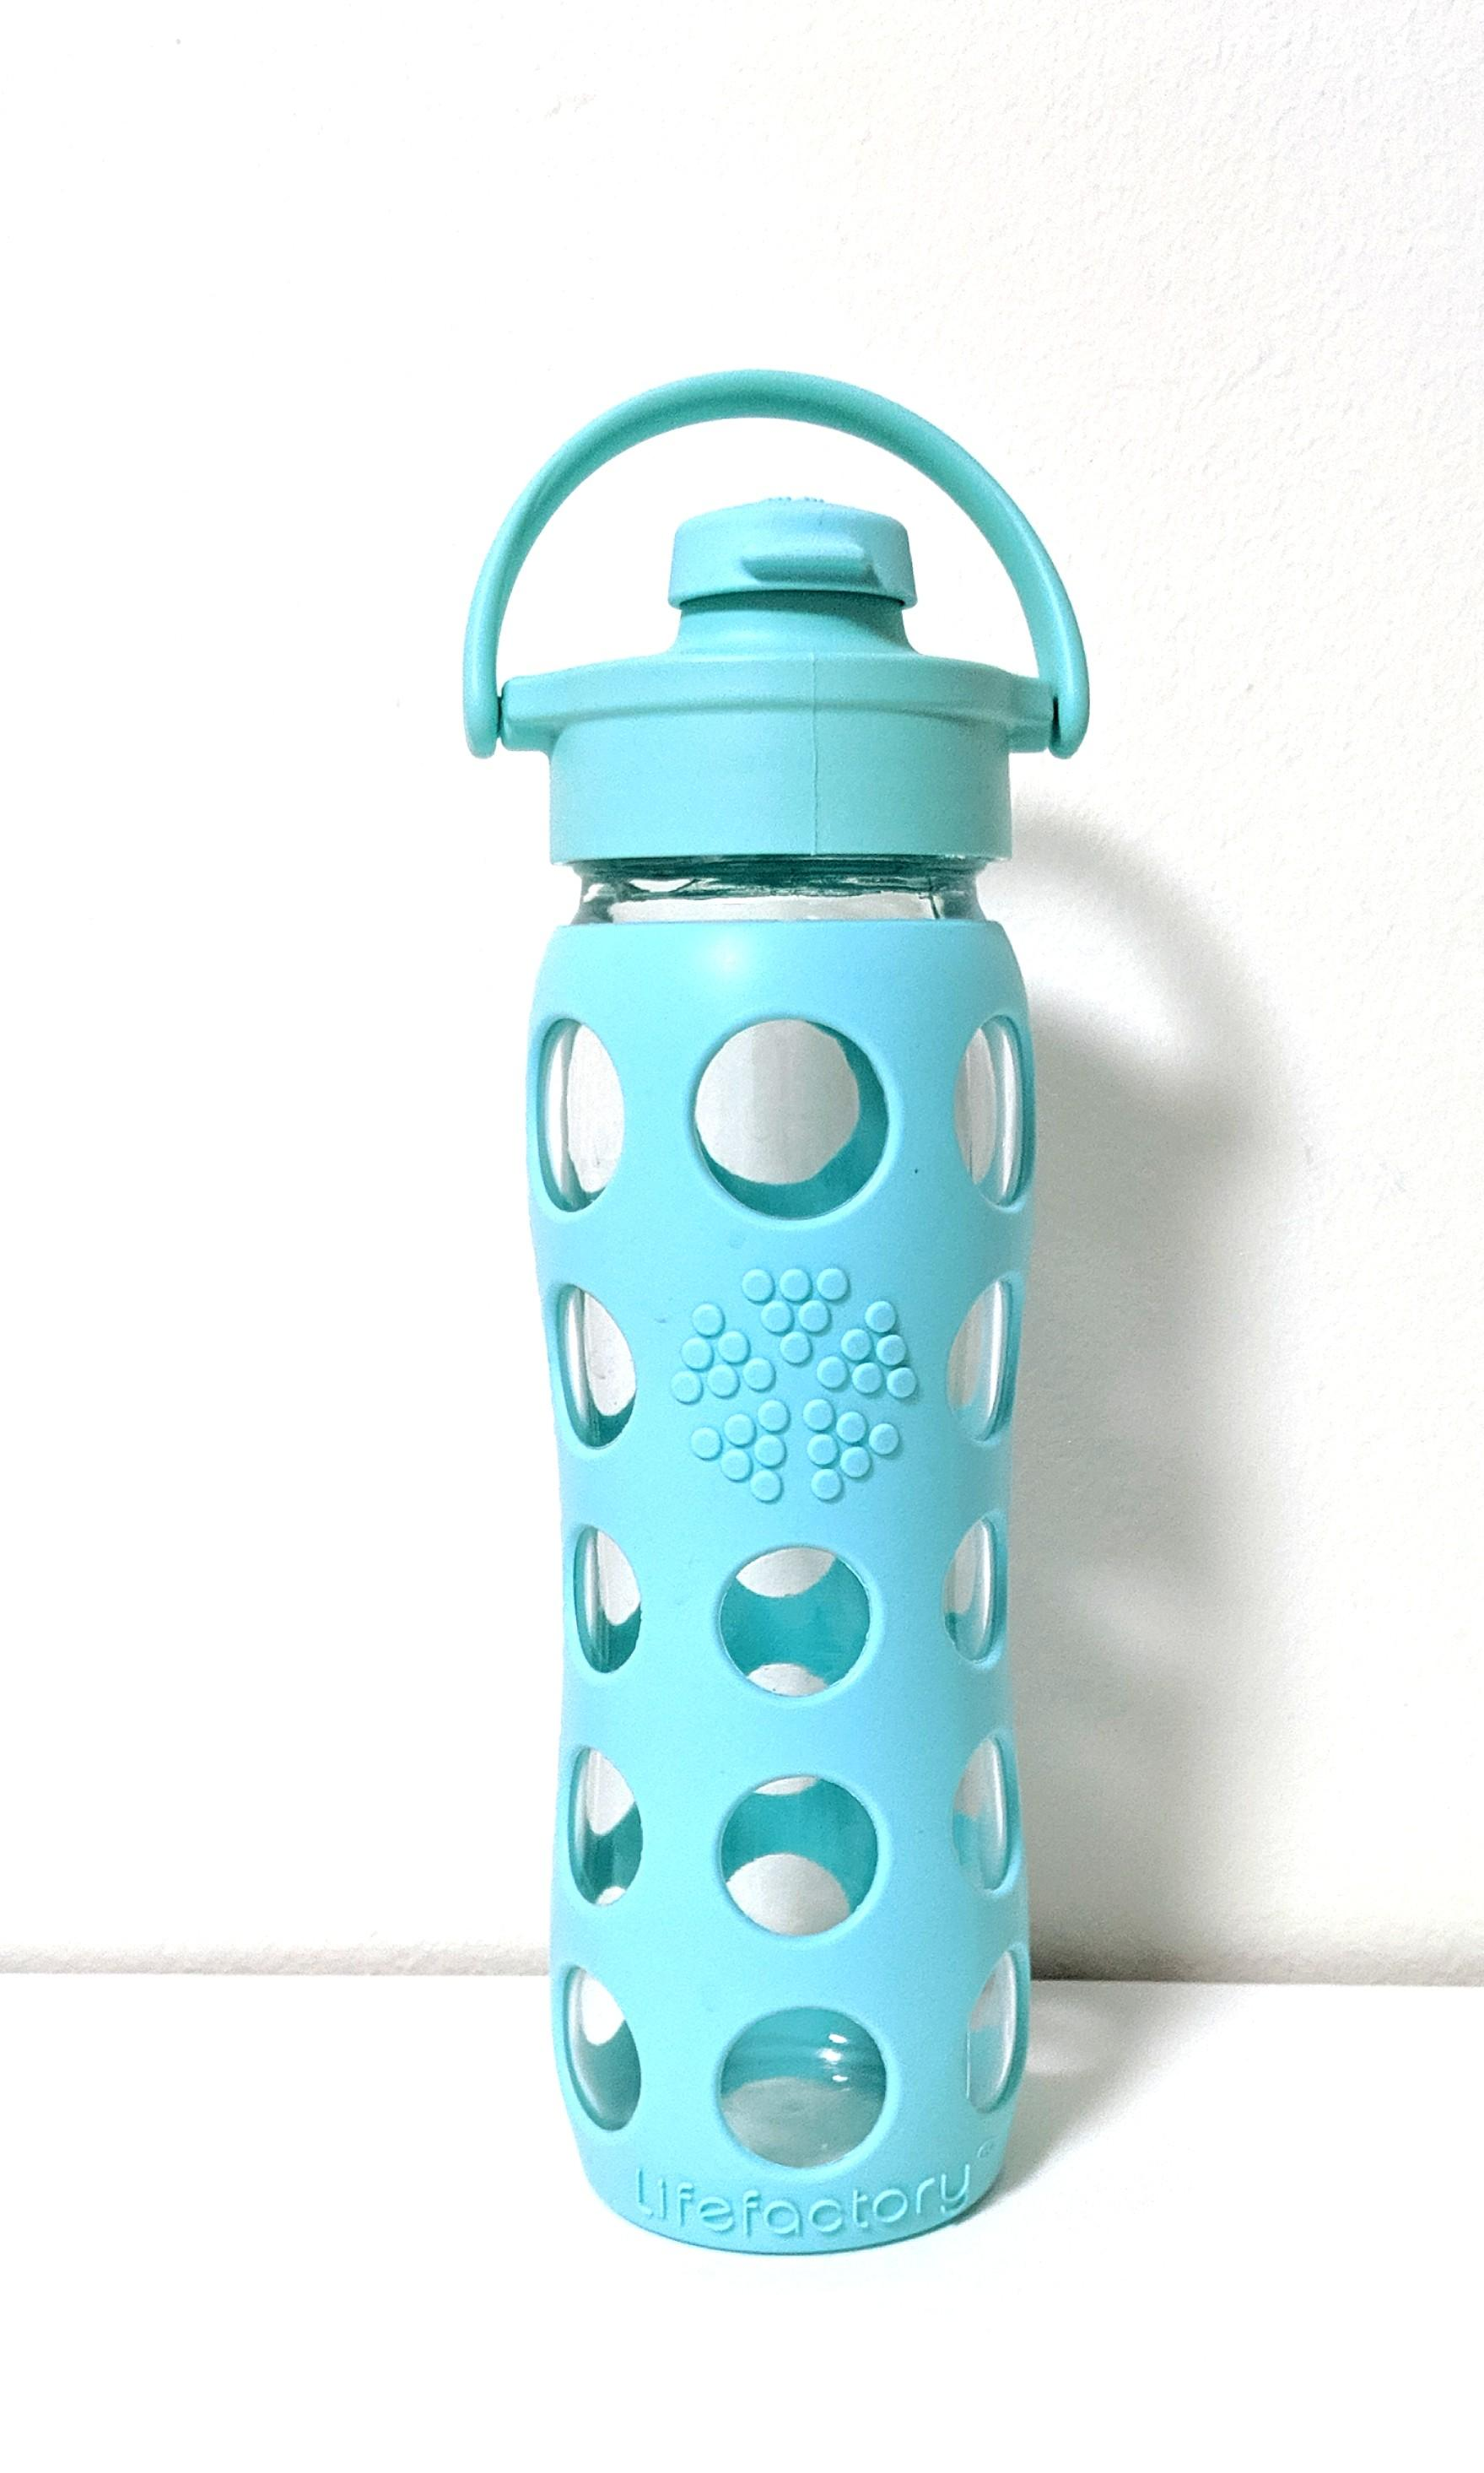 Lifefactory Glass Water Bottle 12oz/ 650ml